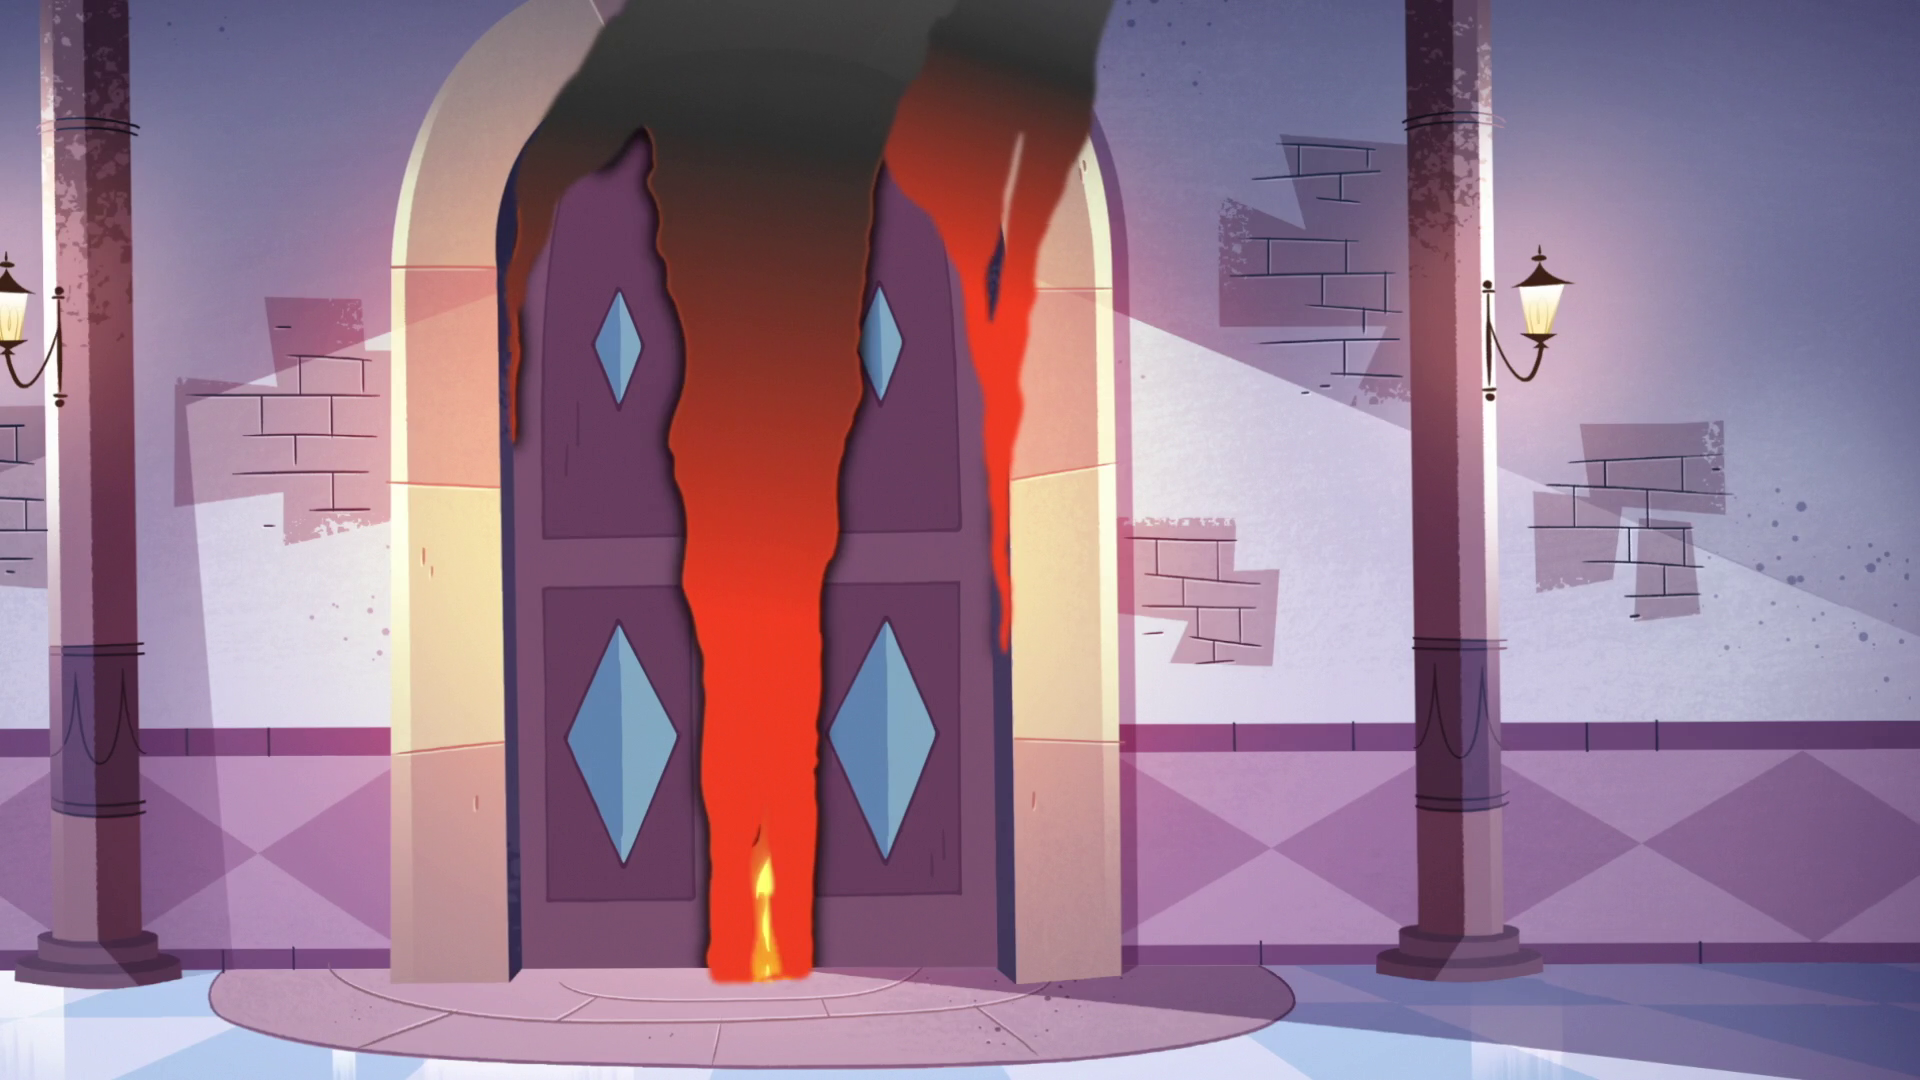 S3E10 The ballroom doors burn.png & Image - S3E10 The ballroom doors burn.png | Star vs. the Forces of ...